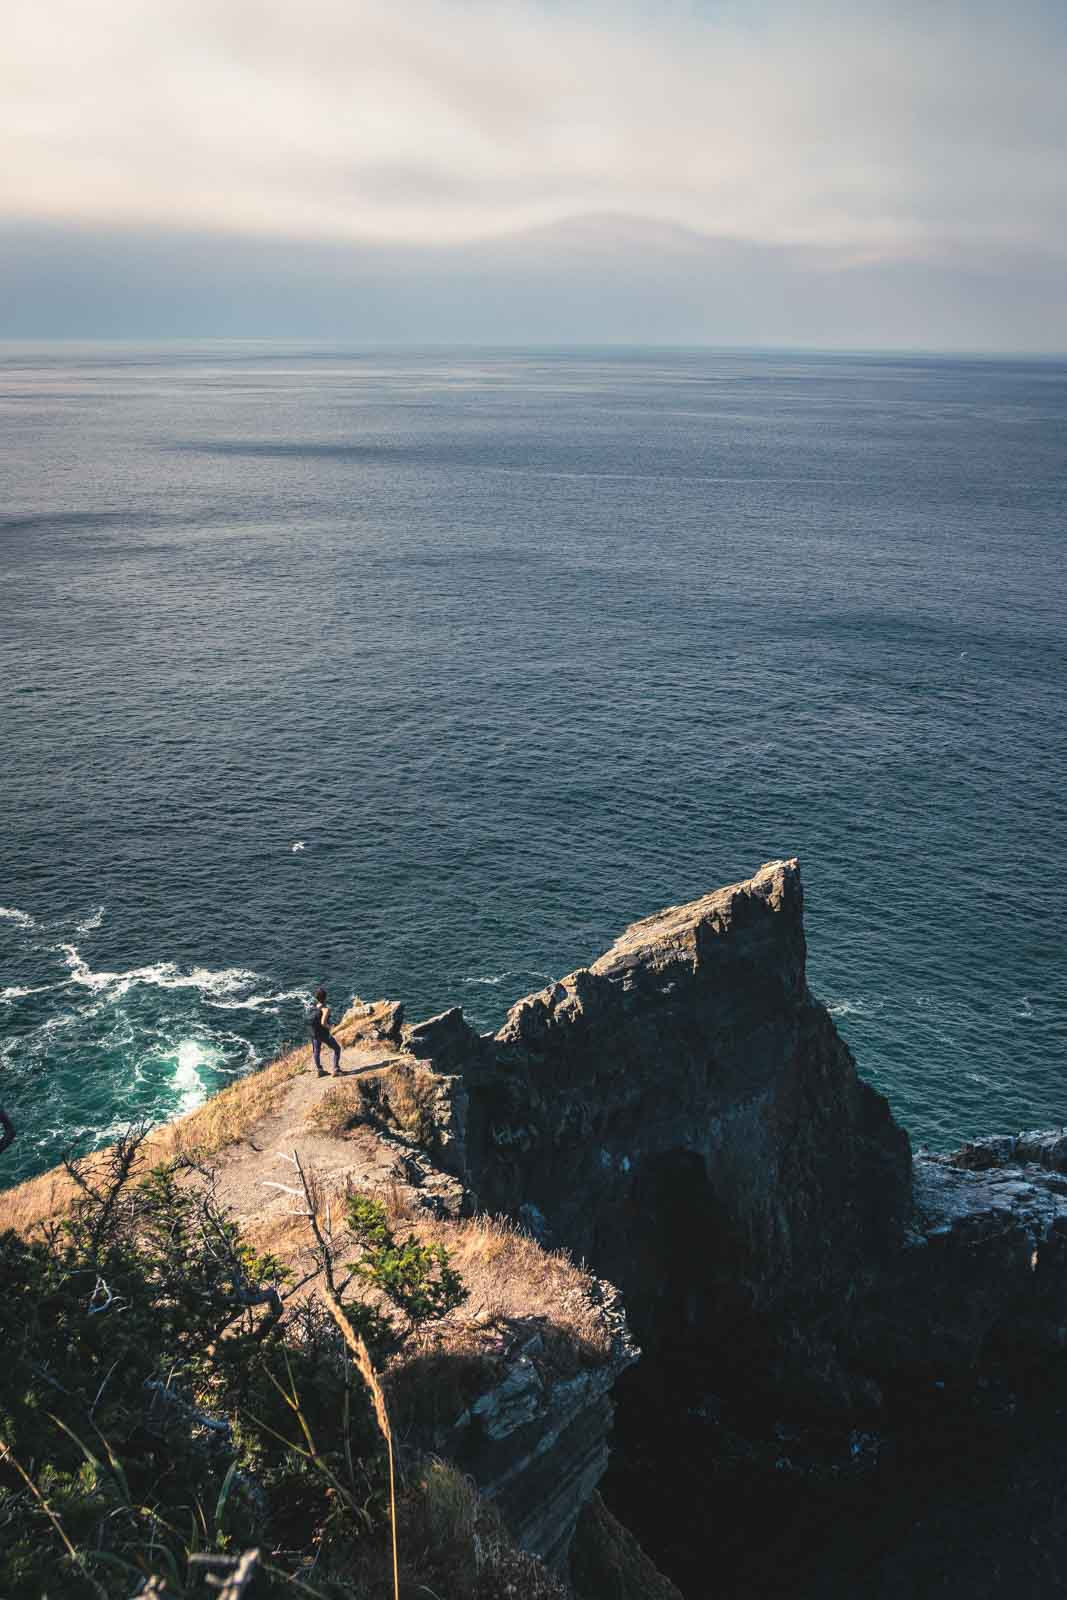 View of ocean and rocks from clifftop on the Cape Falcon trail